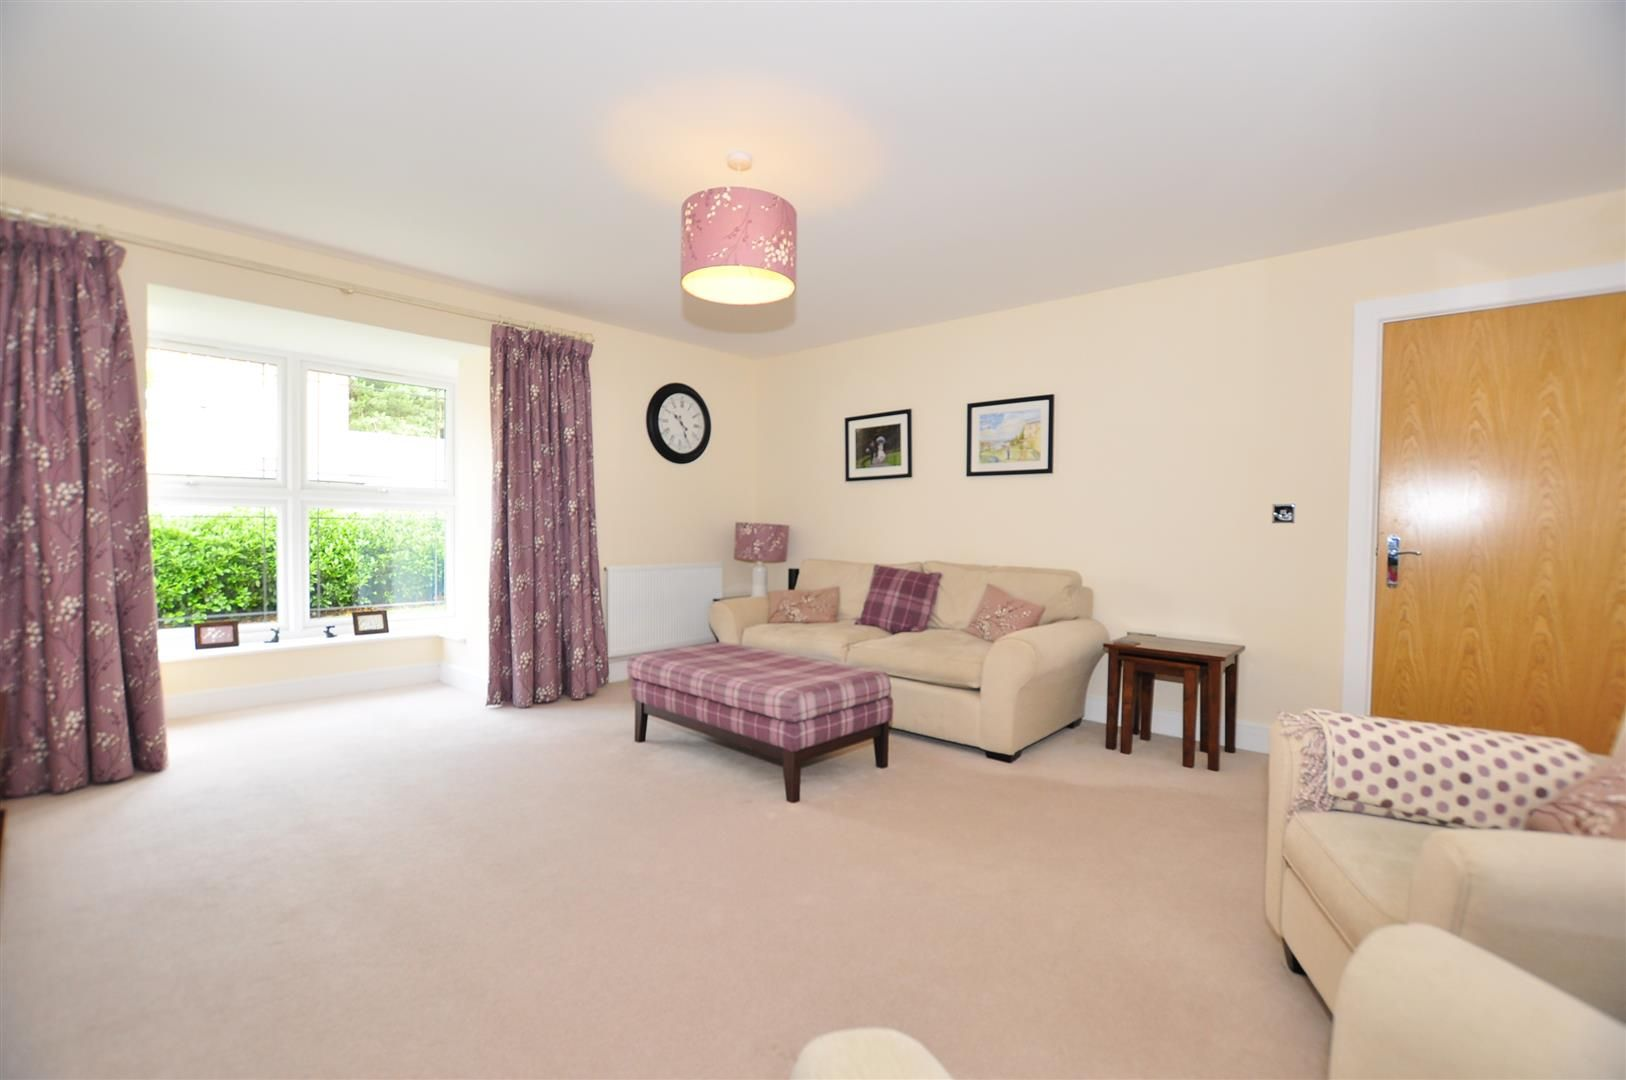 4 bed detached for sale in Hagley  - Property Image 8